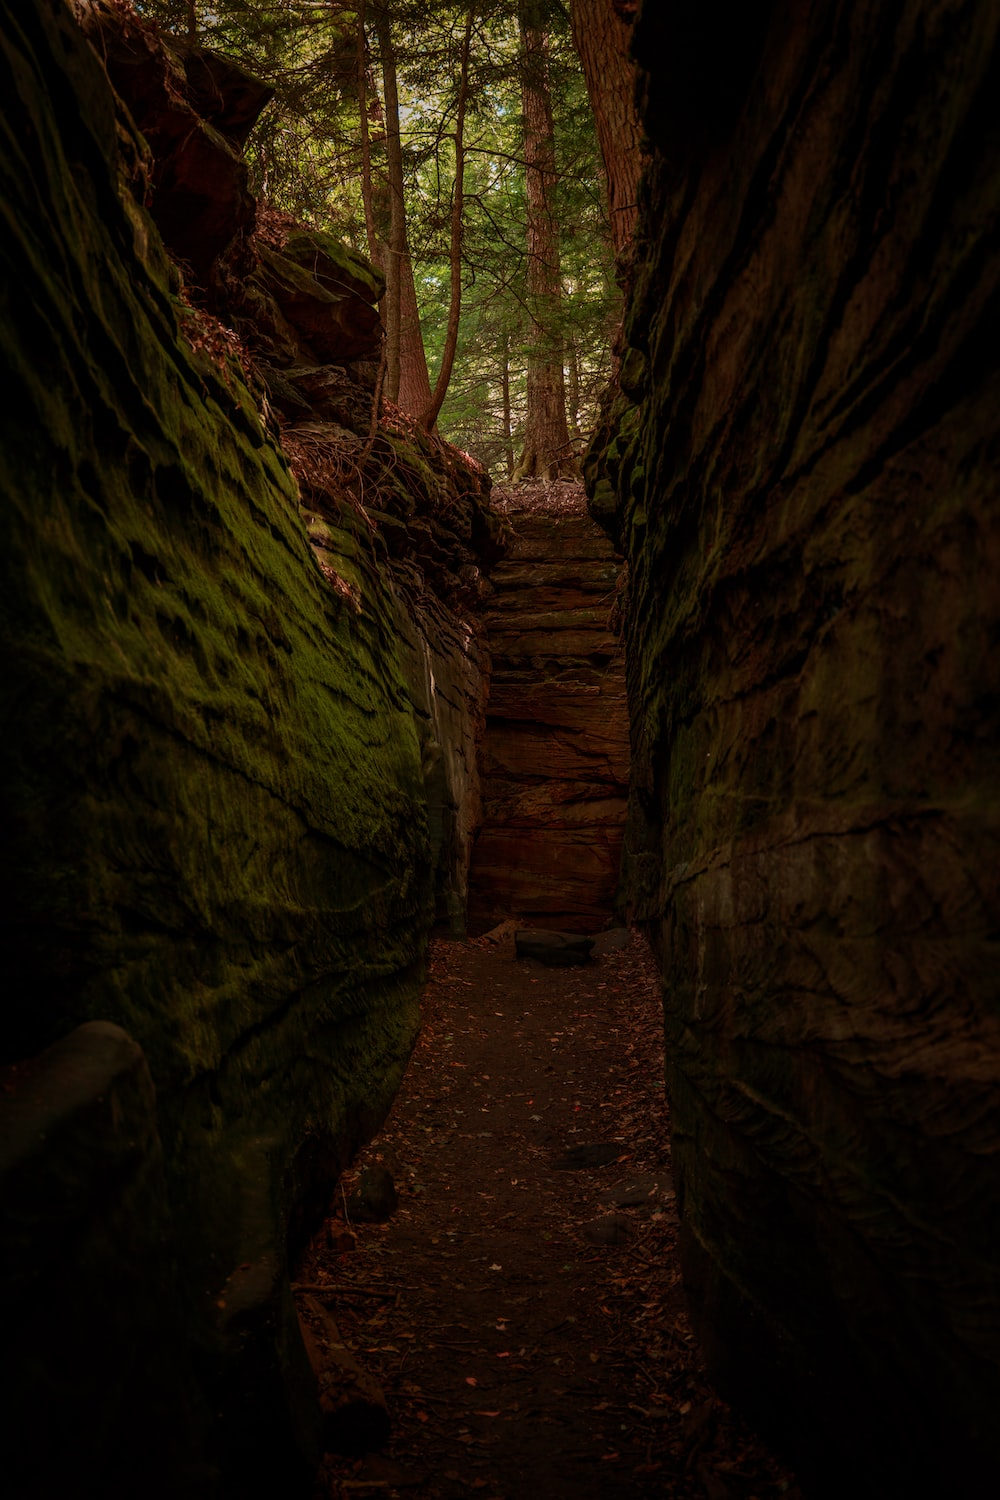 brown wooden stairs between brown rock formation during daytime